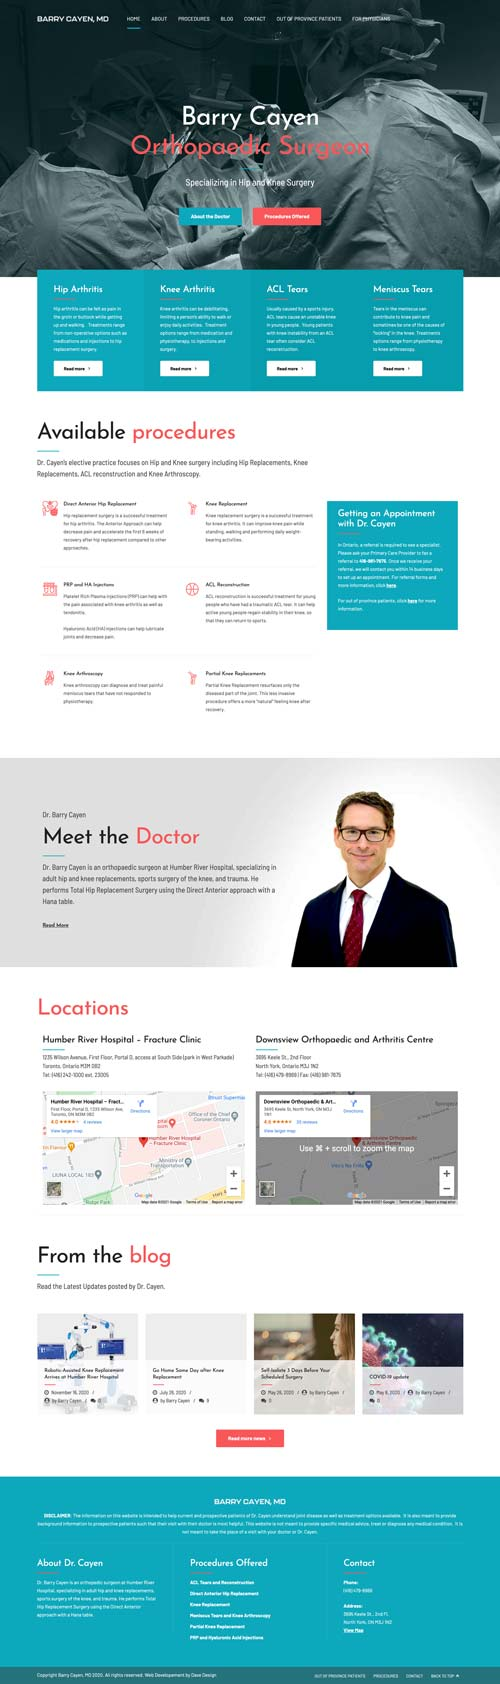 a screenshot of the doctor barry cayen homepage